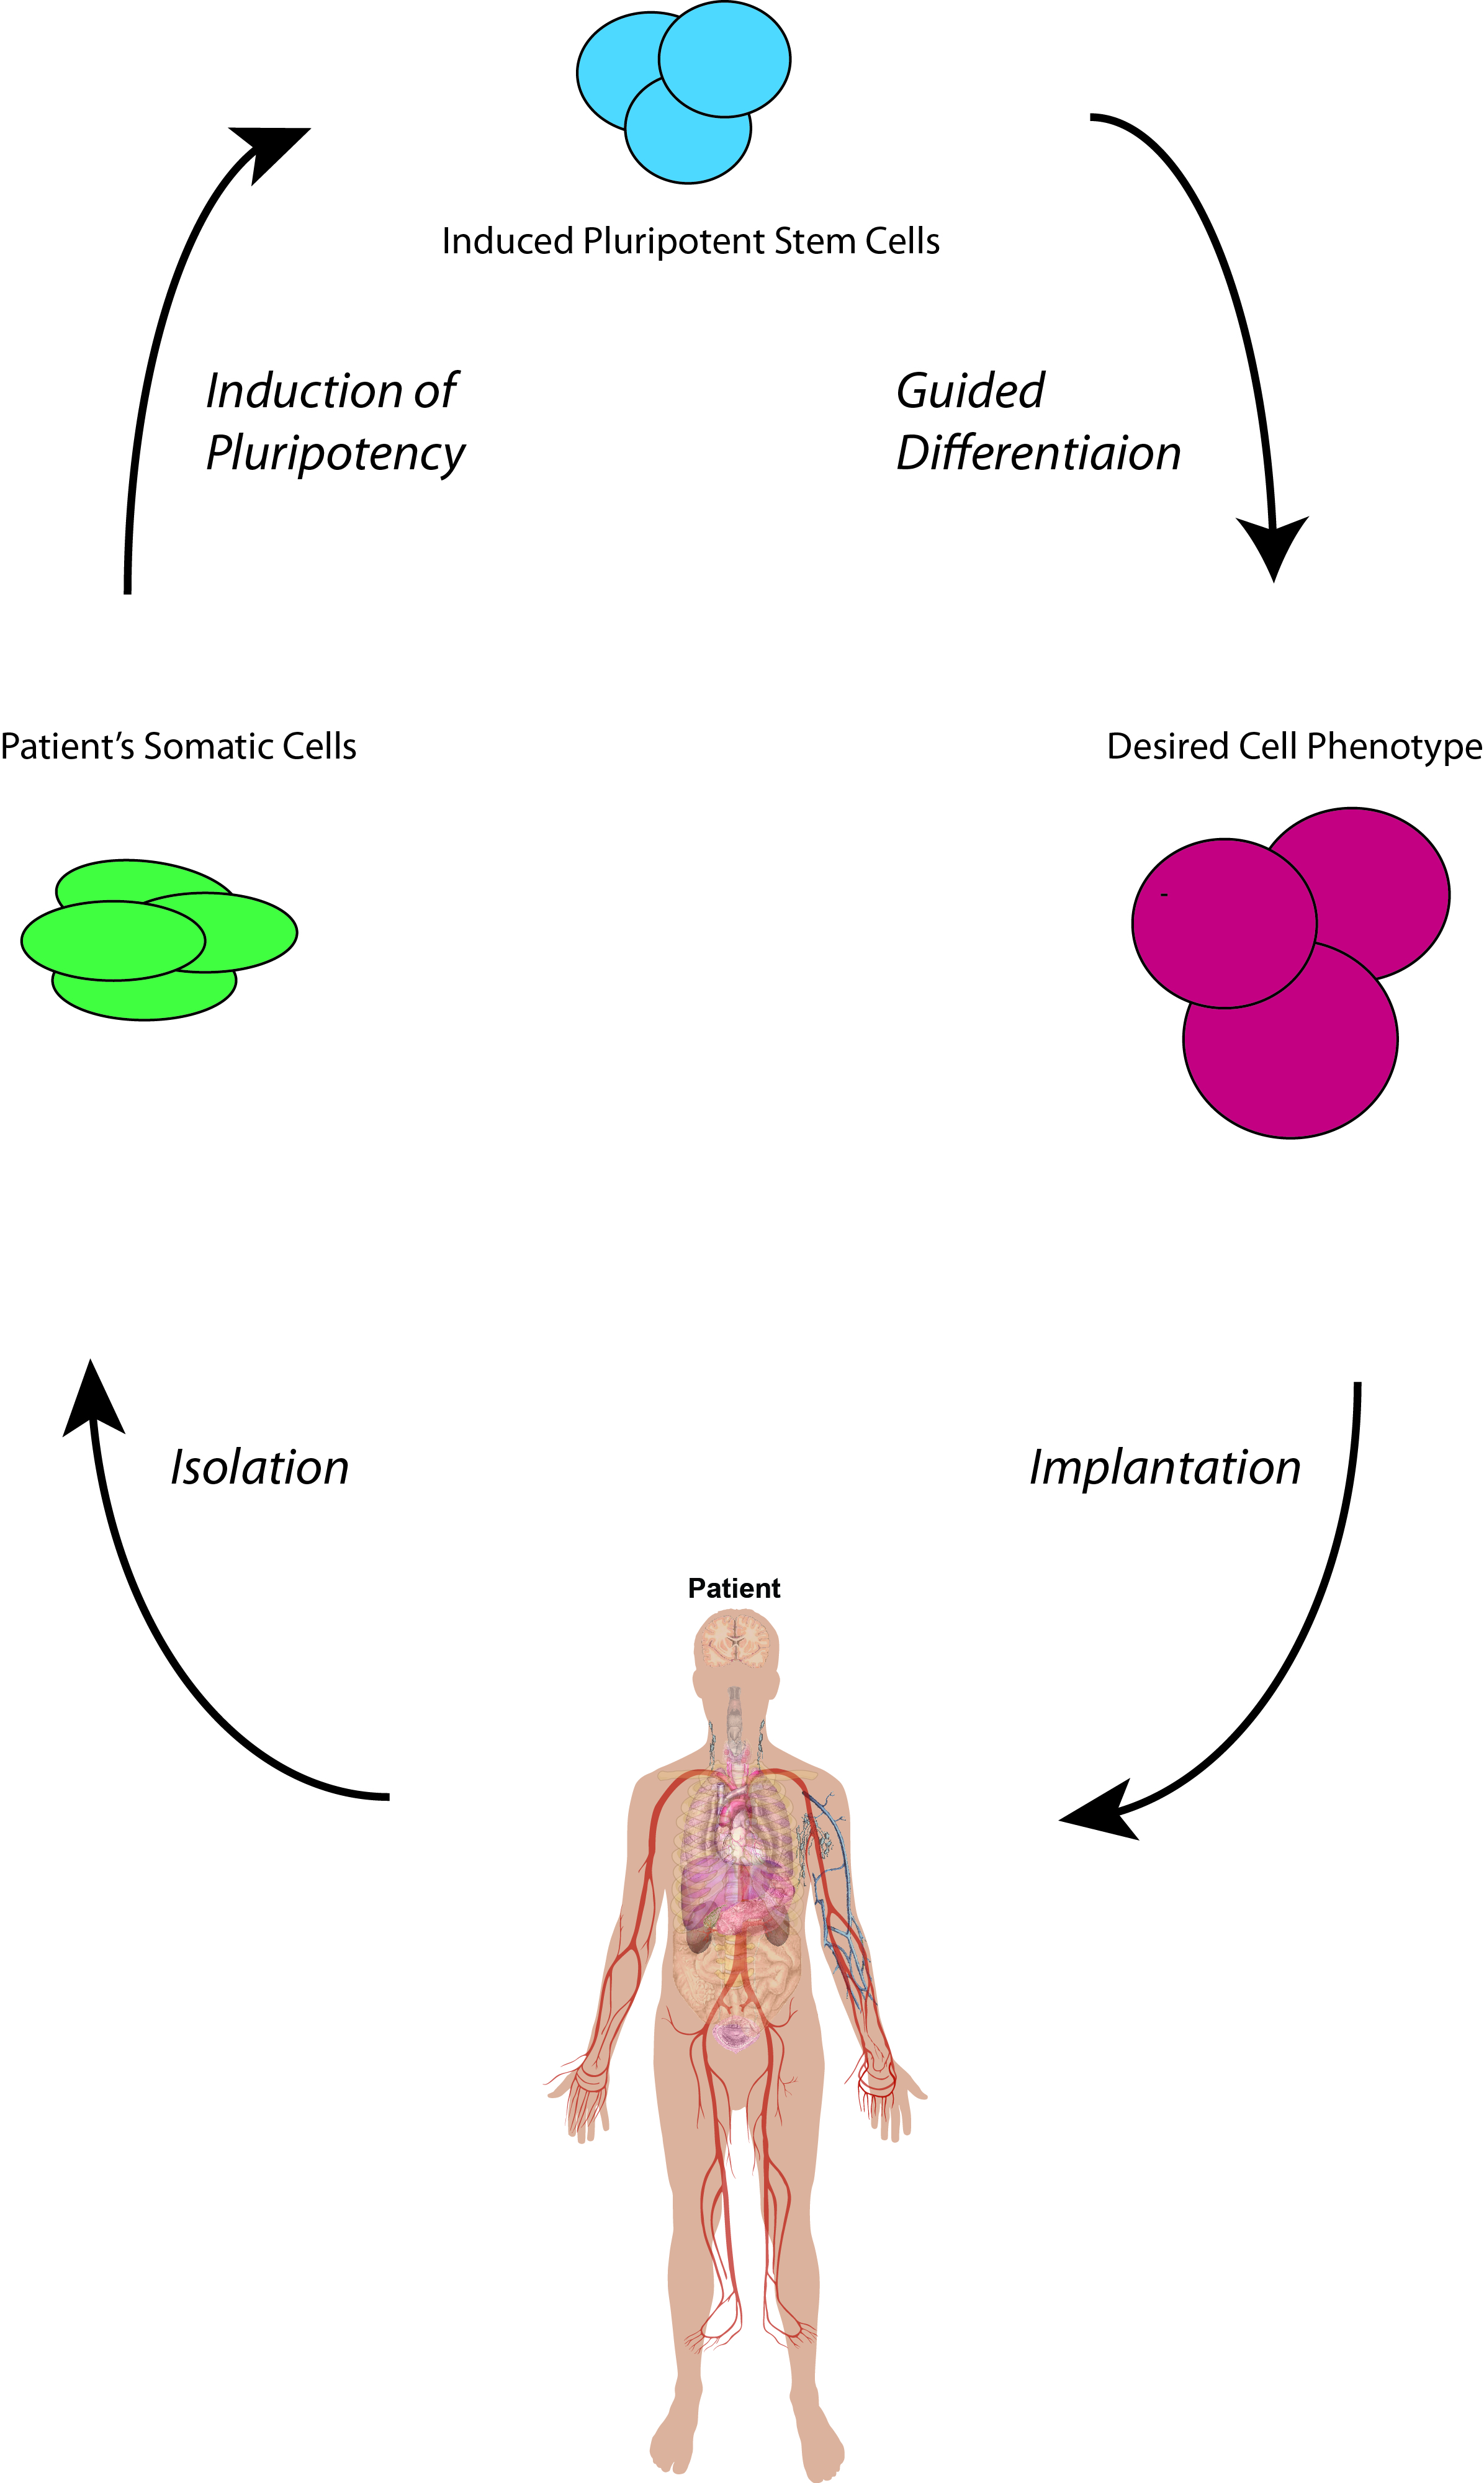 induced pluripotent stem cells: current and emerging technologies